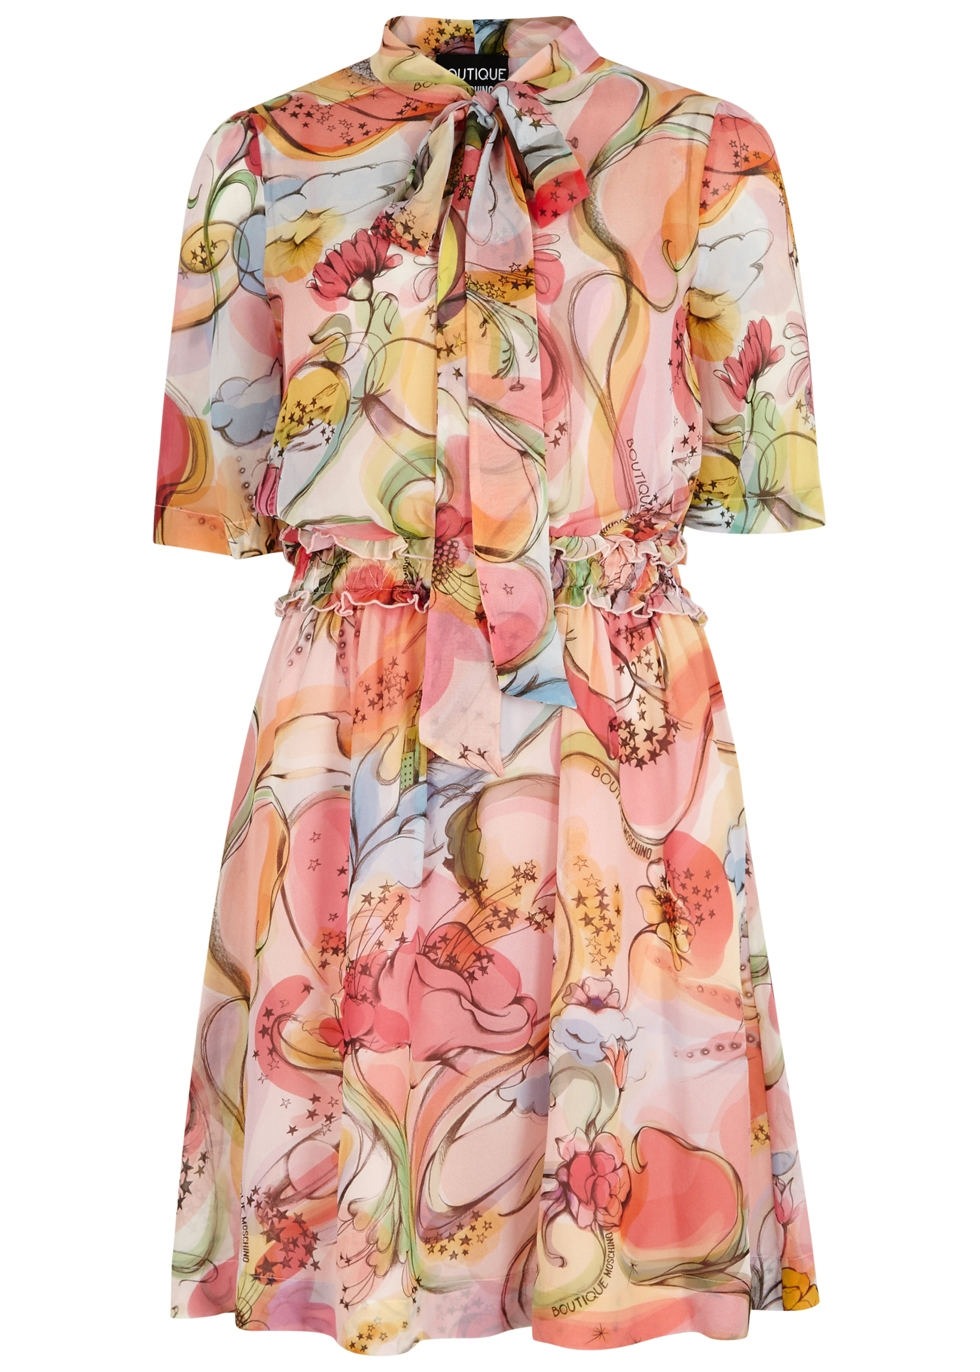 BOUTIQUE MOSCHINO FANTASY-PRINT SILK CHIFFON DRESS